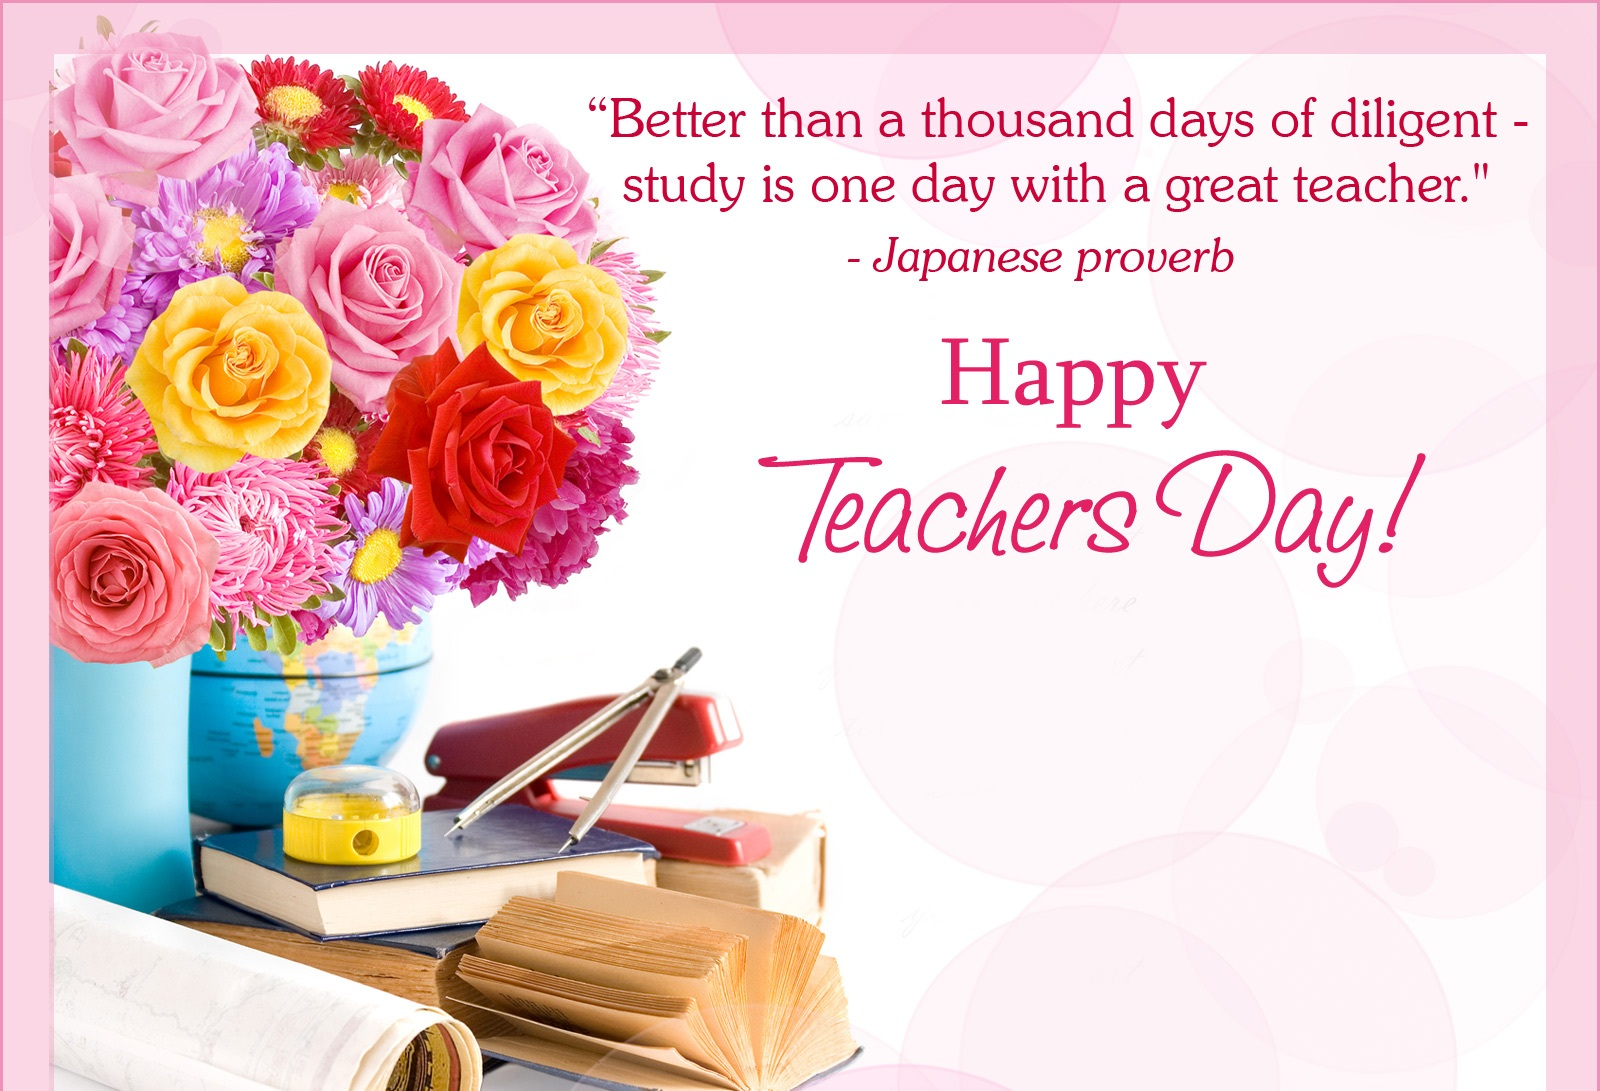 Teachers Day 2019 Image